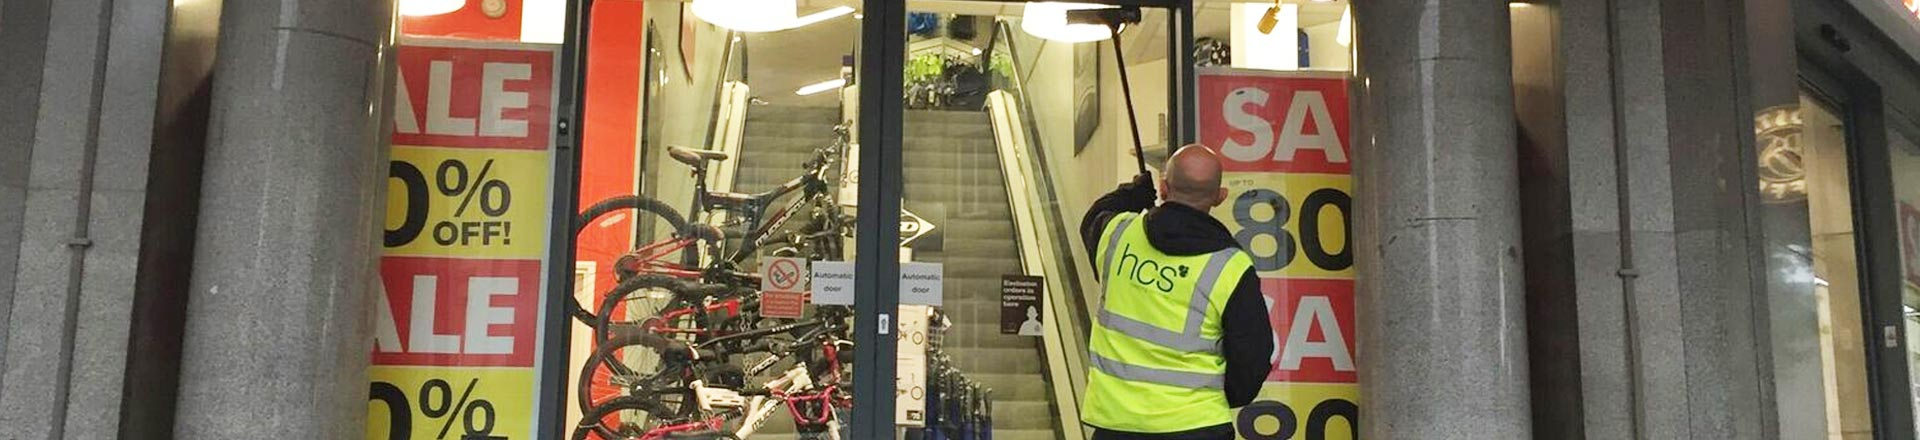 Commercial Window Cleaning Services in Manchester and the North West - HCS Cleaning Services